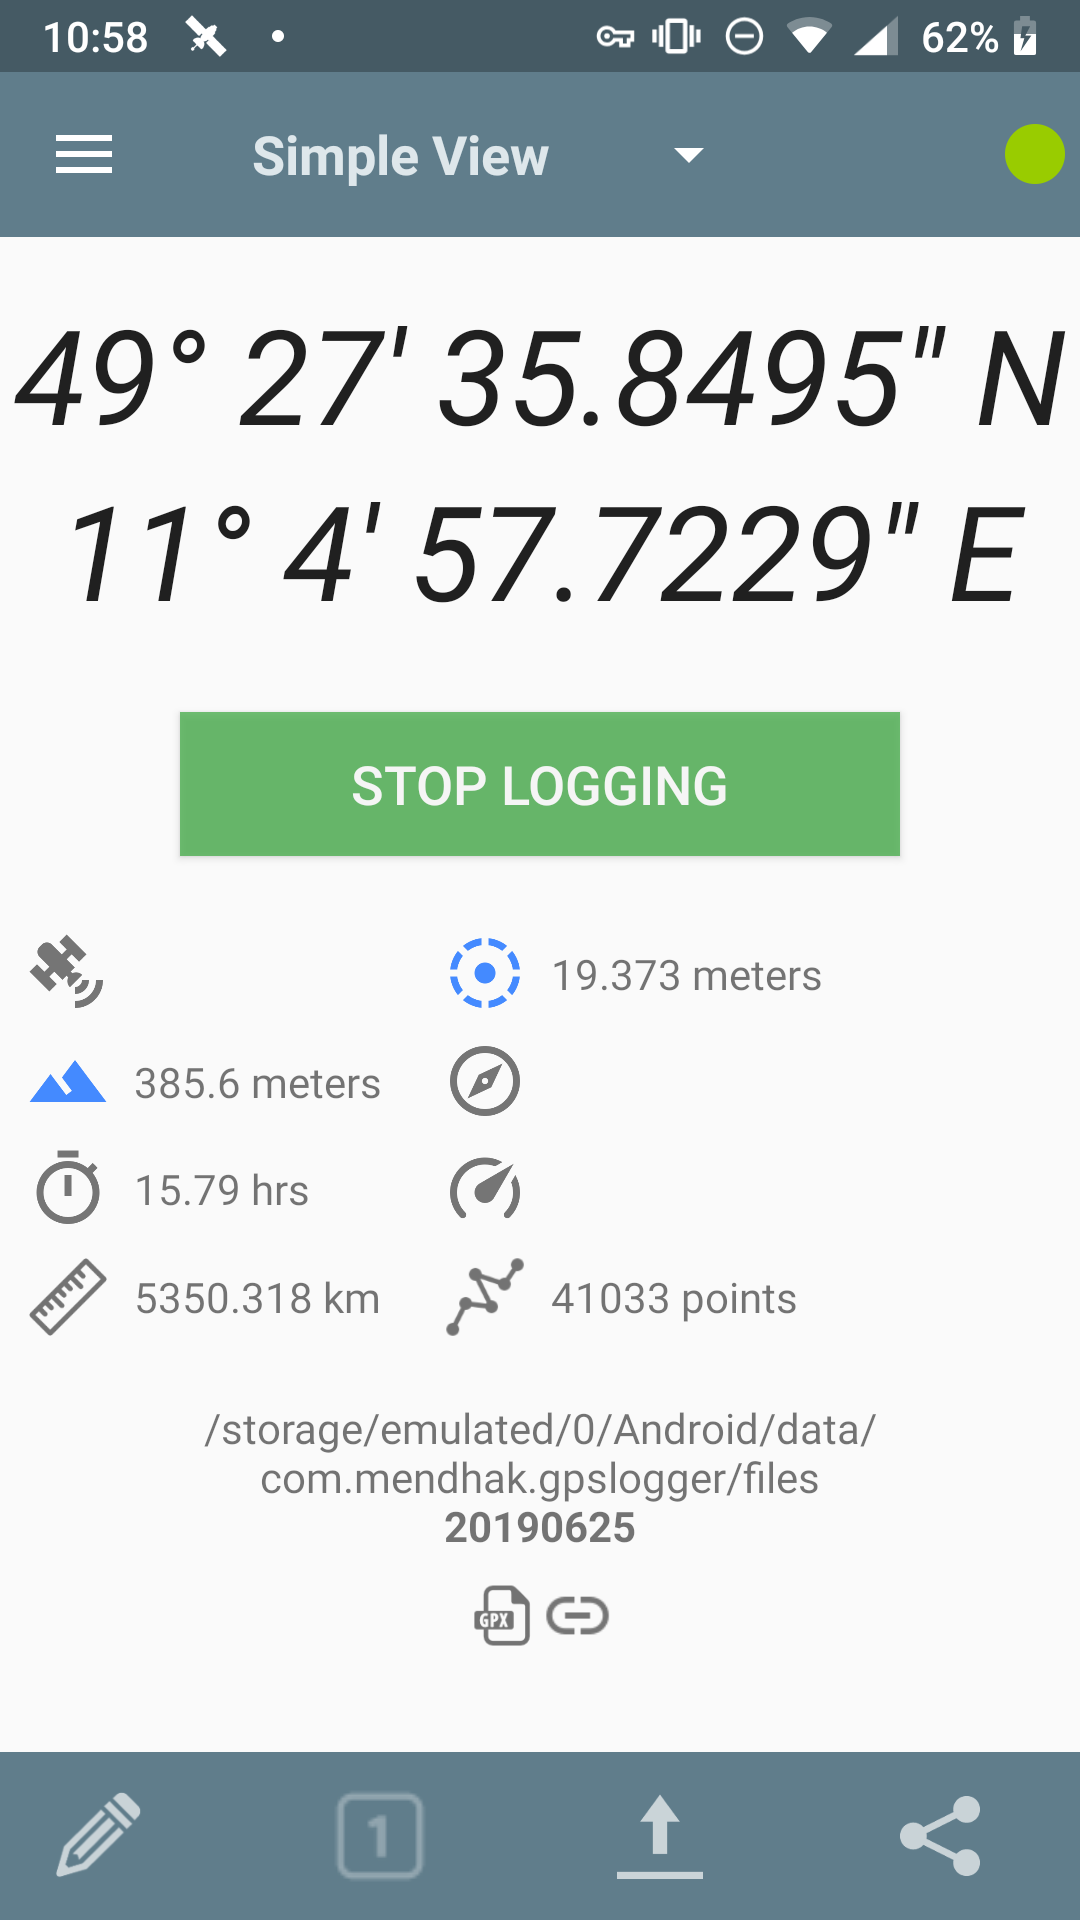 GPS TRacker for Android in all its bare-bone beauty